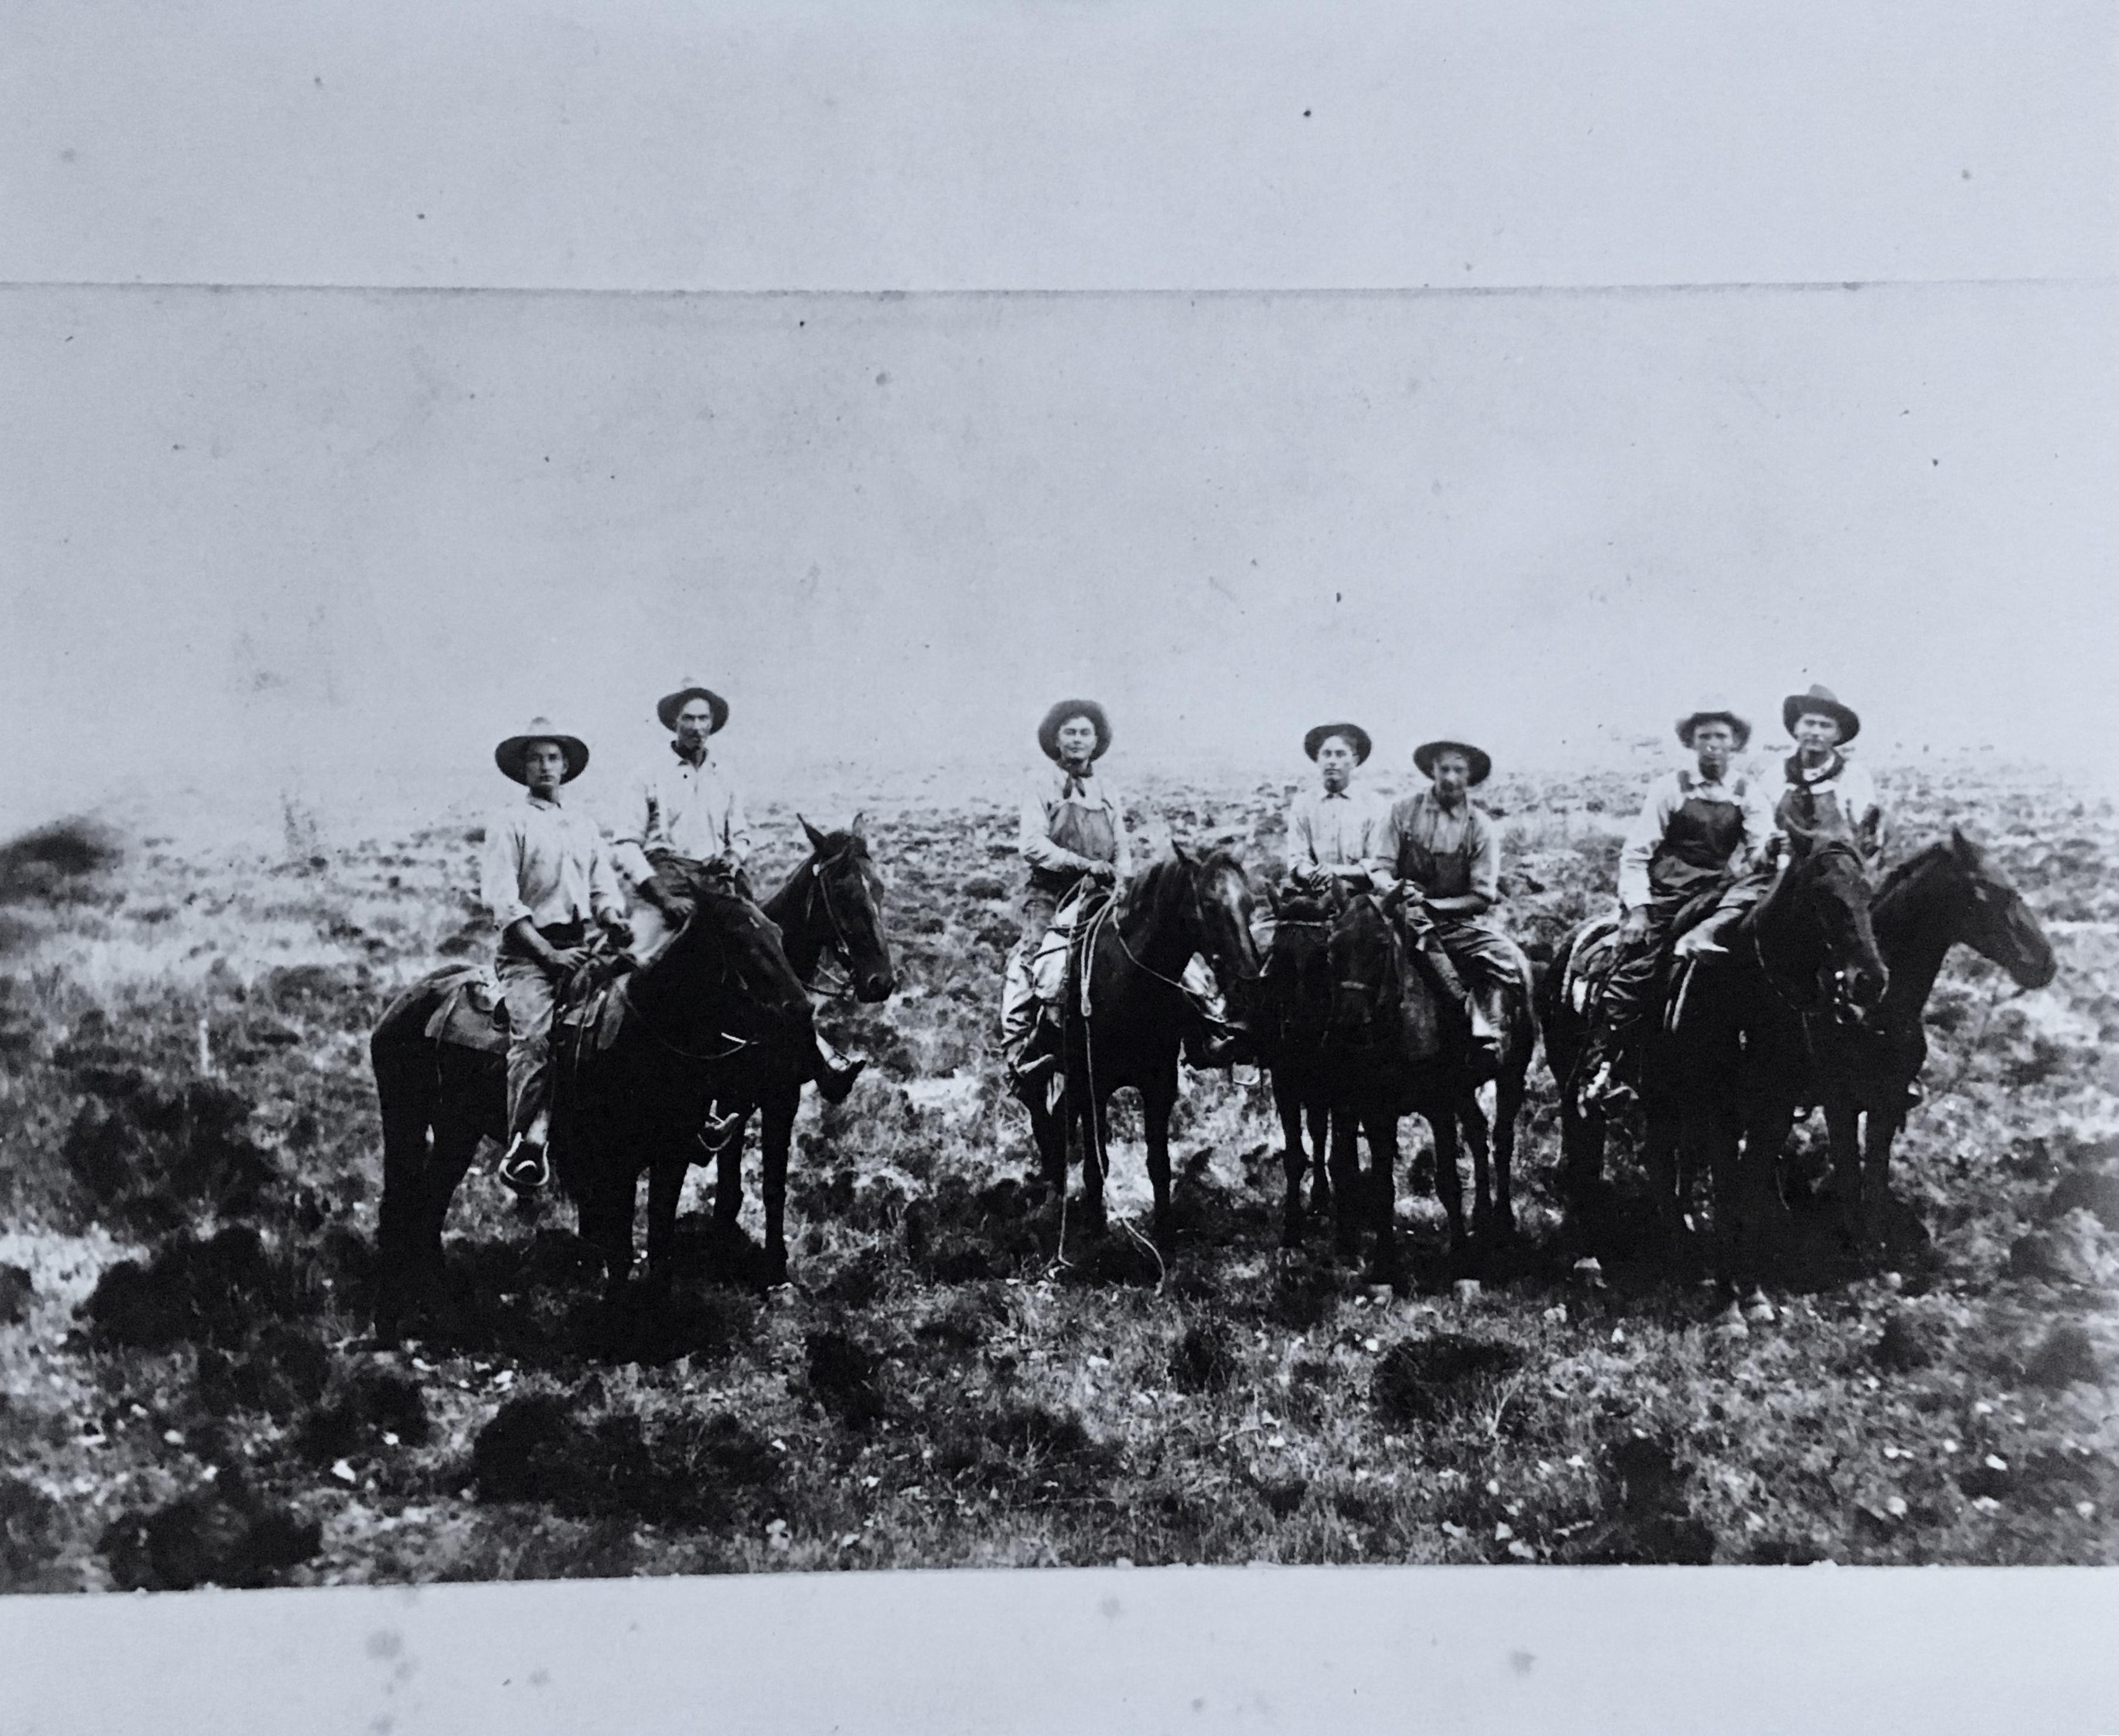 The Caffall brothers and friends in Dexter, New Mexico in 1905